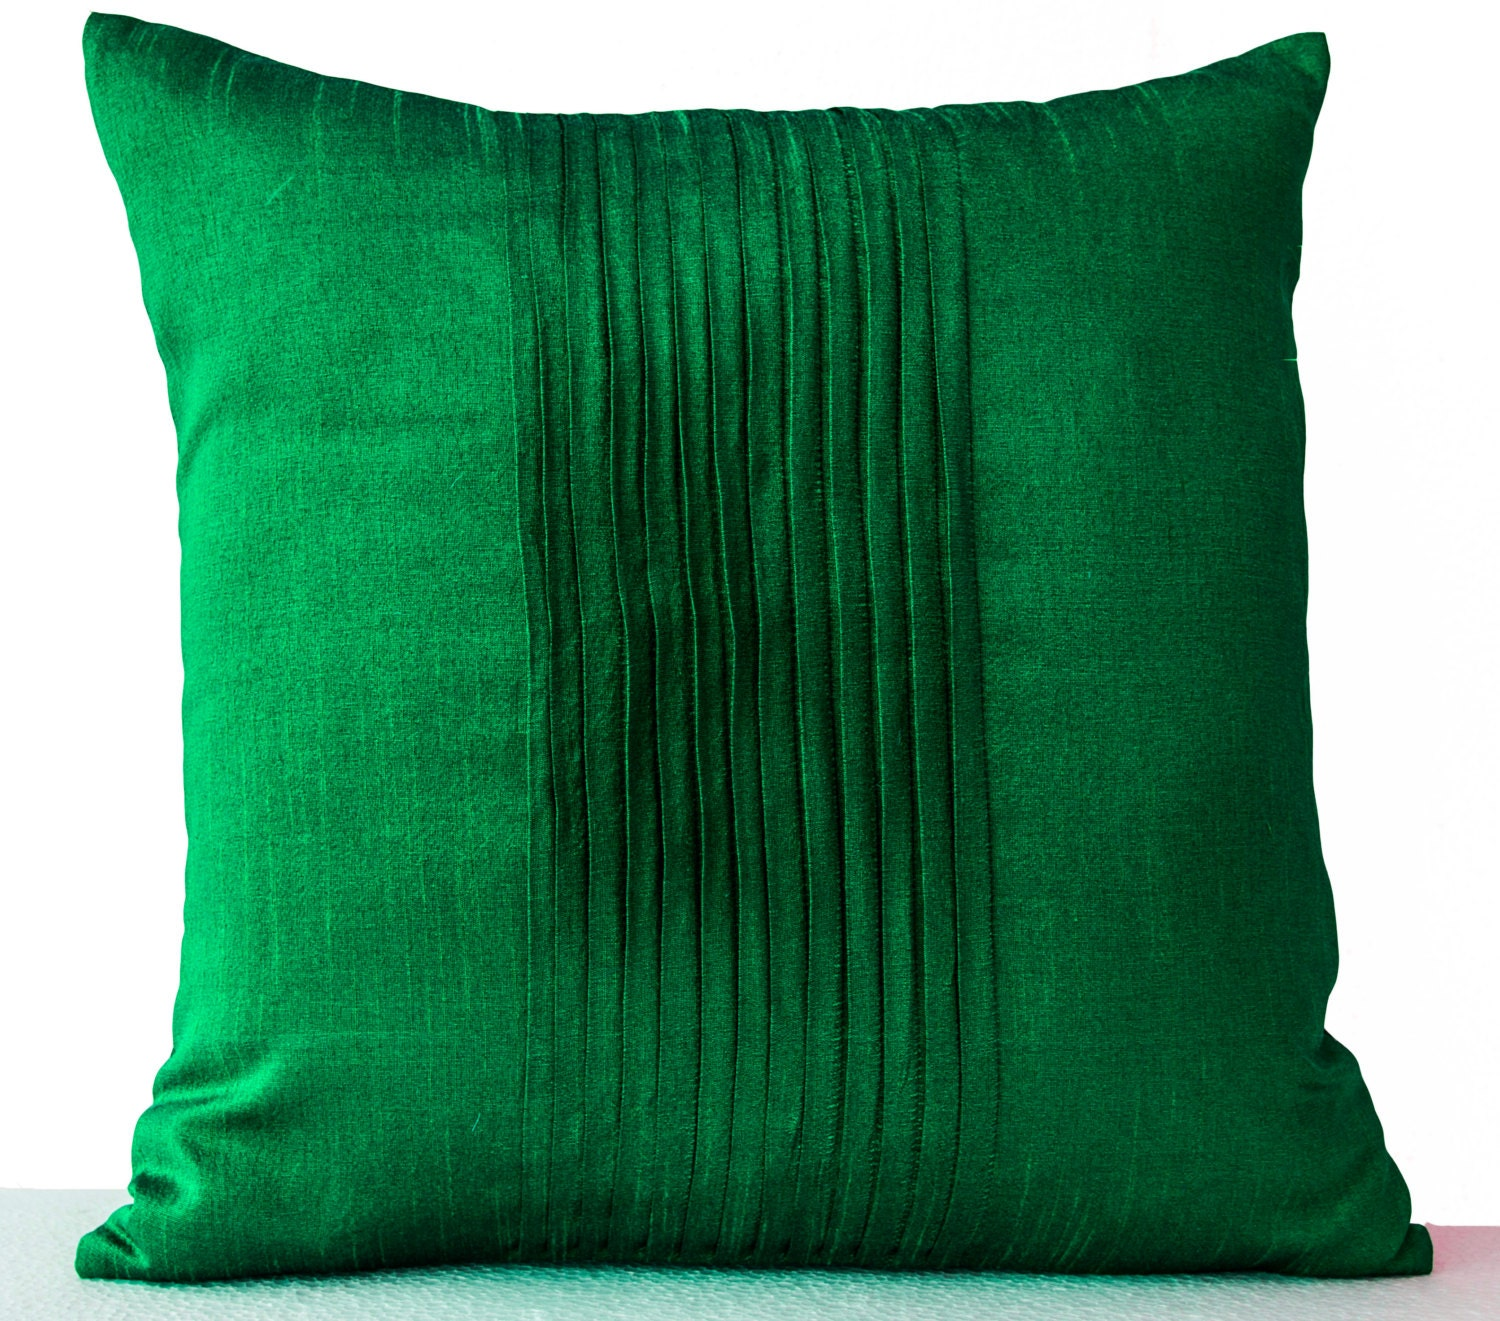 Green Silk Throw Pillow : Decorative Pillow For Couch Throw Pillows in Emerald Green